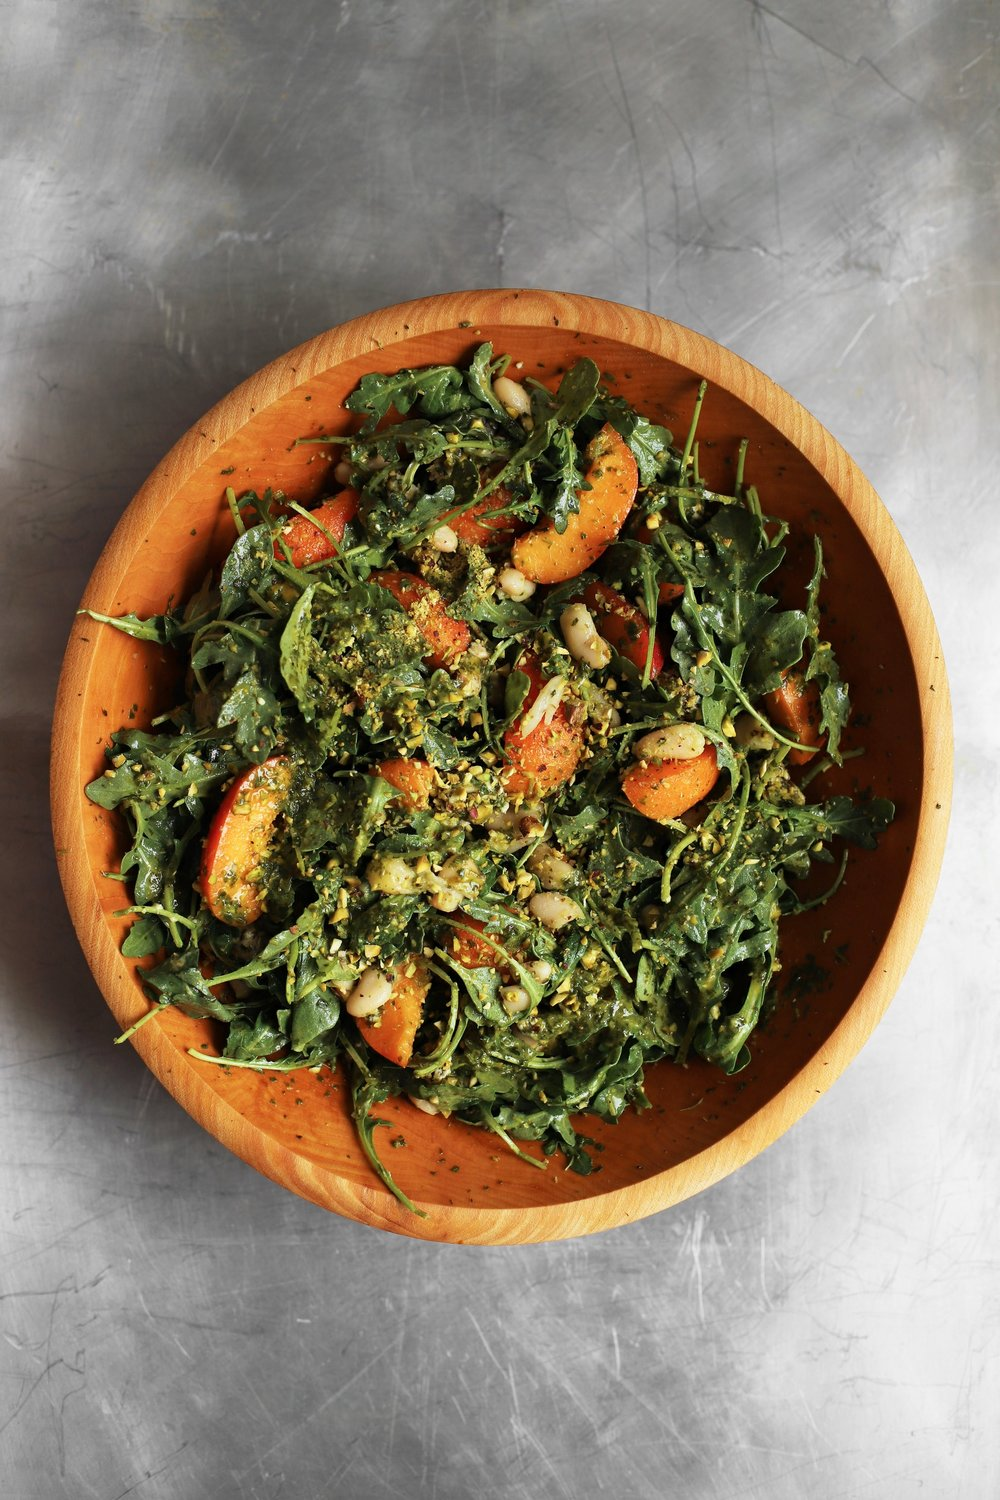 apricot pistachio salad with cilantro lemon dressing